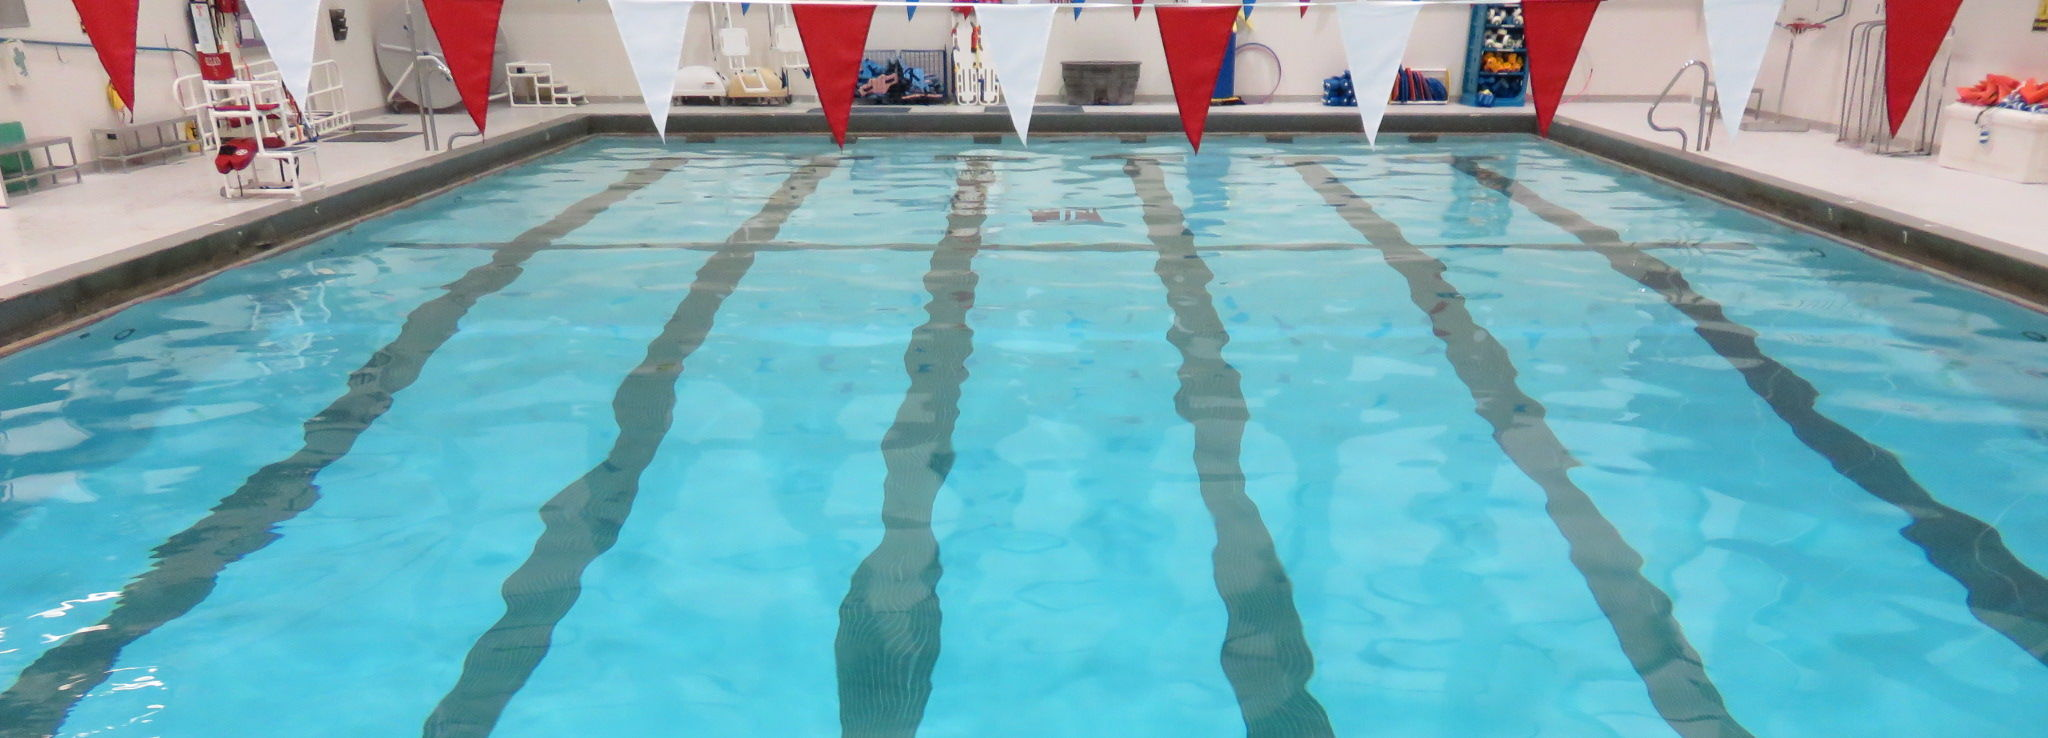 Pearson and mcgonigle halls campus recreation - Pool school 123 ...